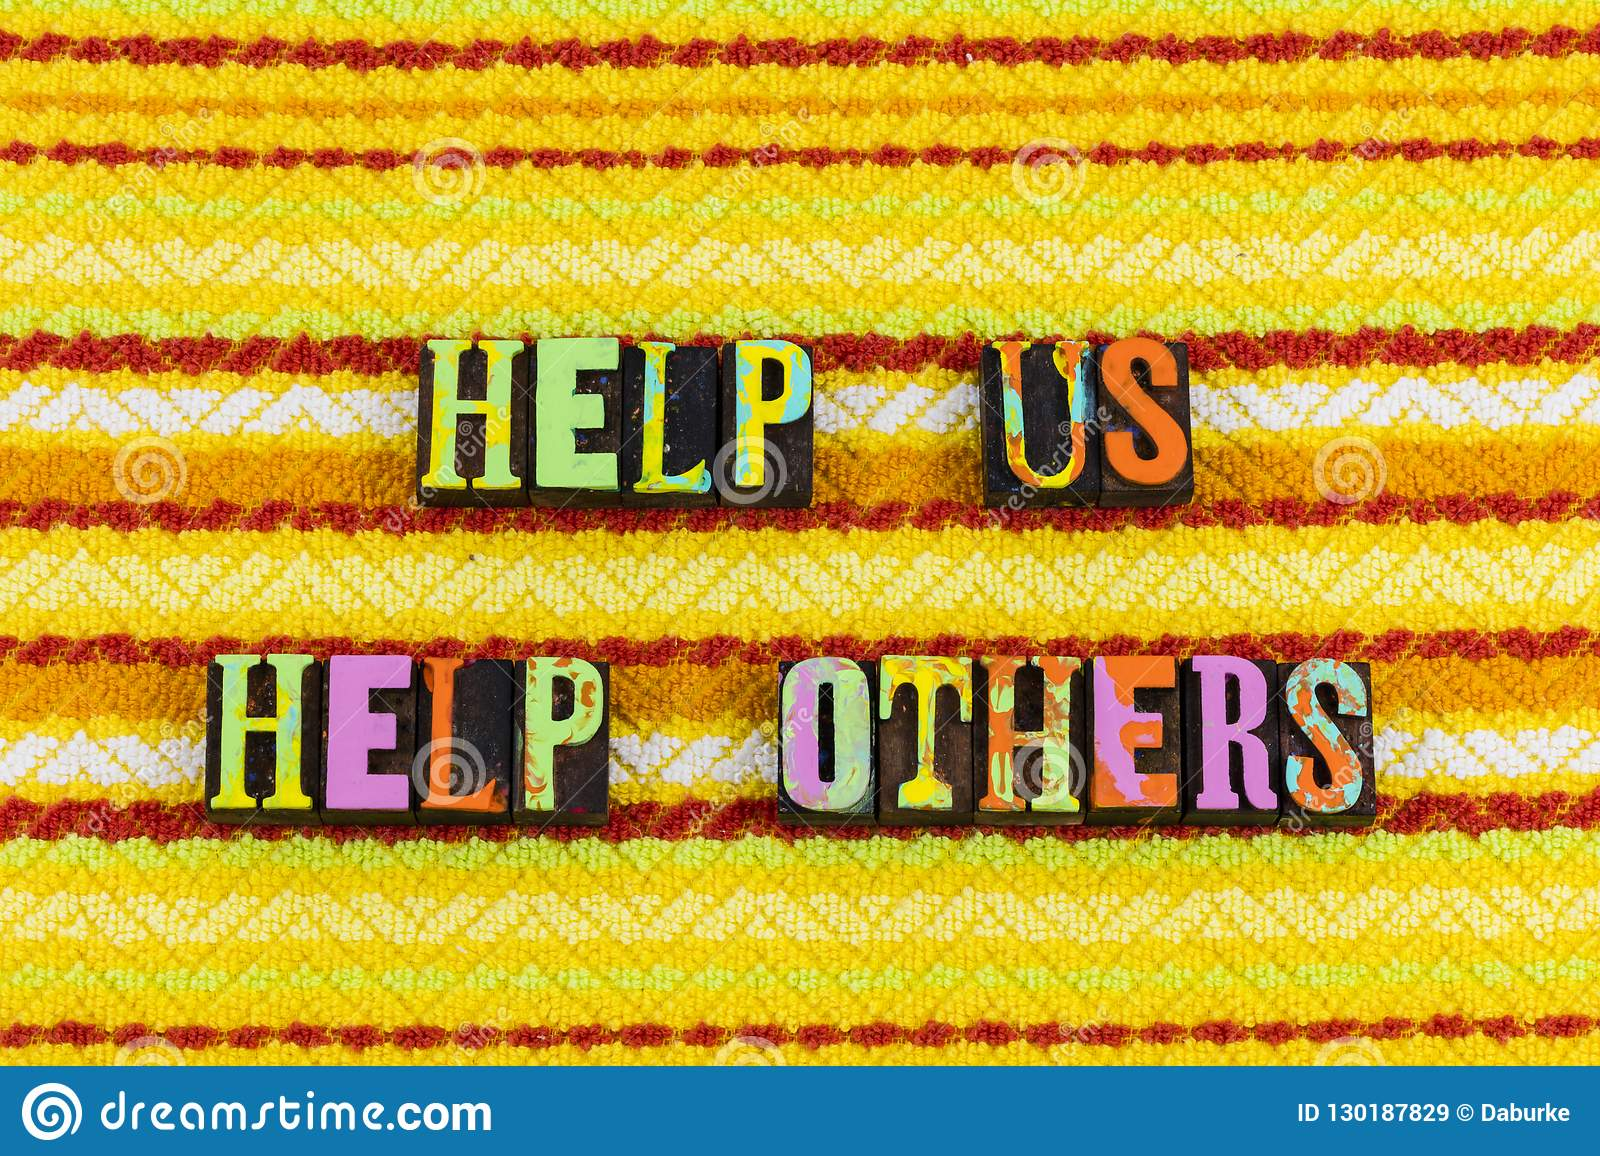 Help us helping people charity others kind